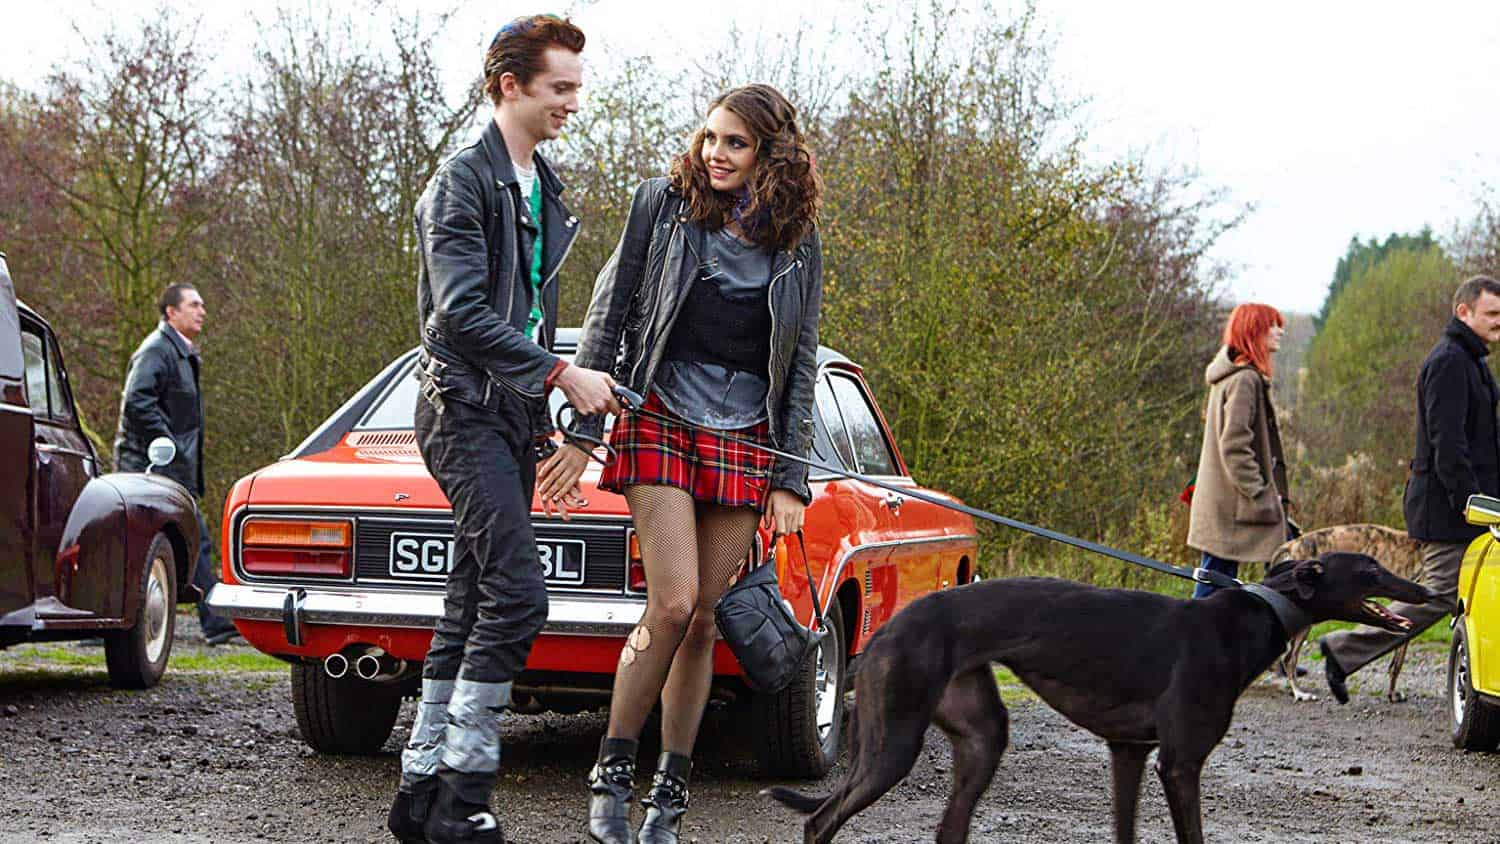 Dusty And Me Review – Boy And Dog Go Racing - OC Movie Reviews - Movie Reviews, Movie News, Documentary Reviews, Short Films, Short Film Reviews, Trailers, Movie Trailers, Interviews, film reviews, film news, hollywood, indie films, documentaries